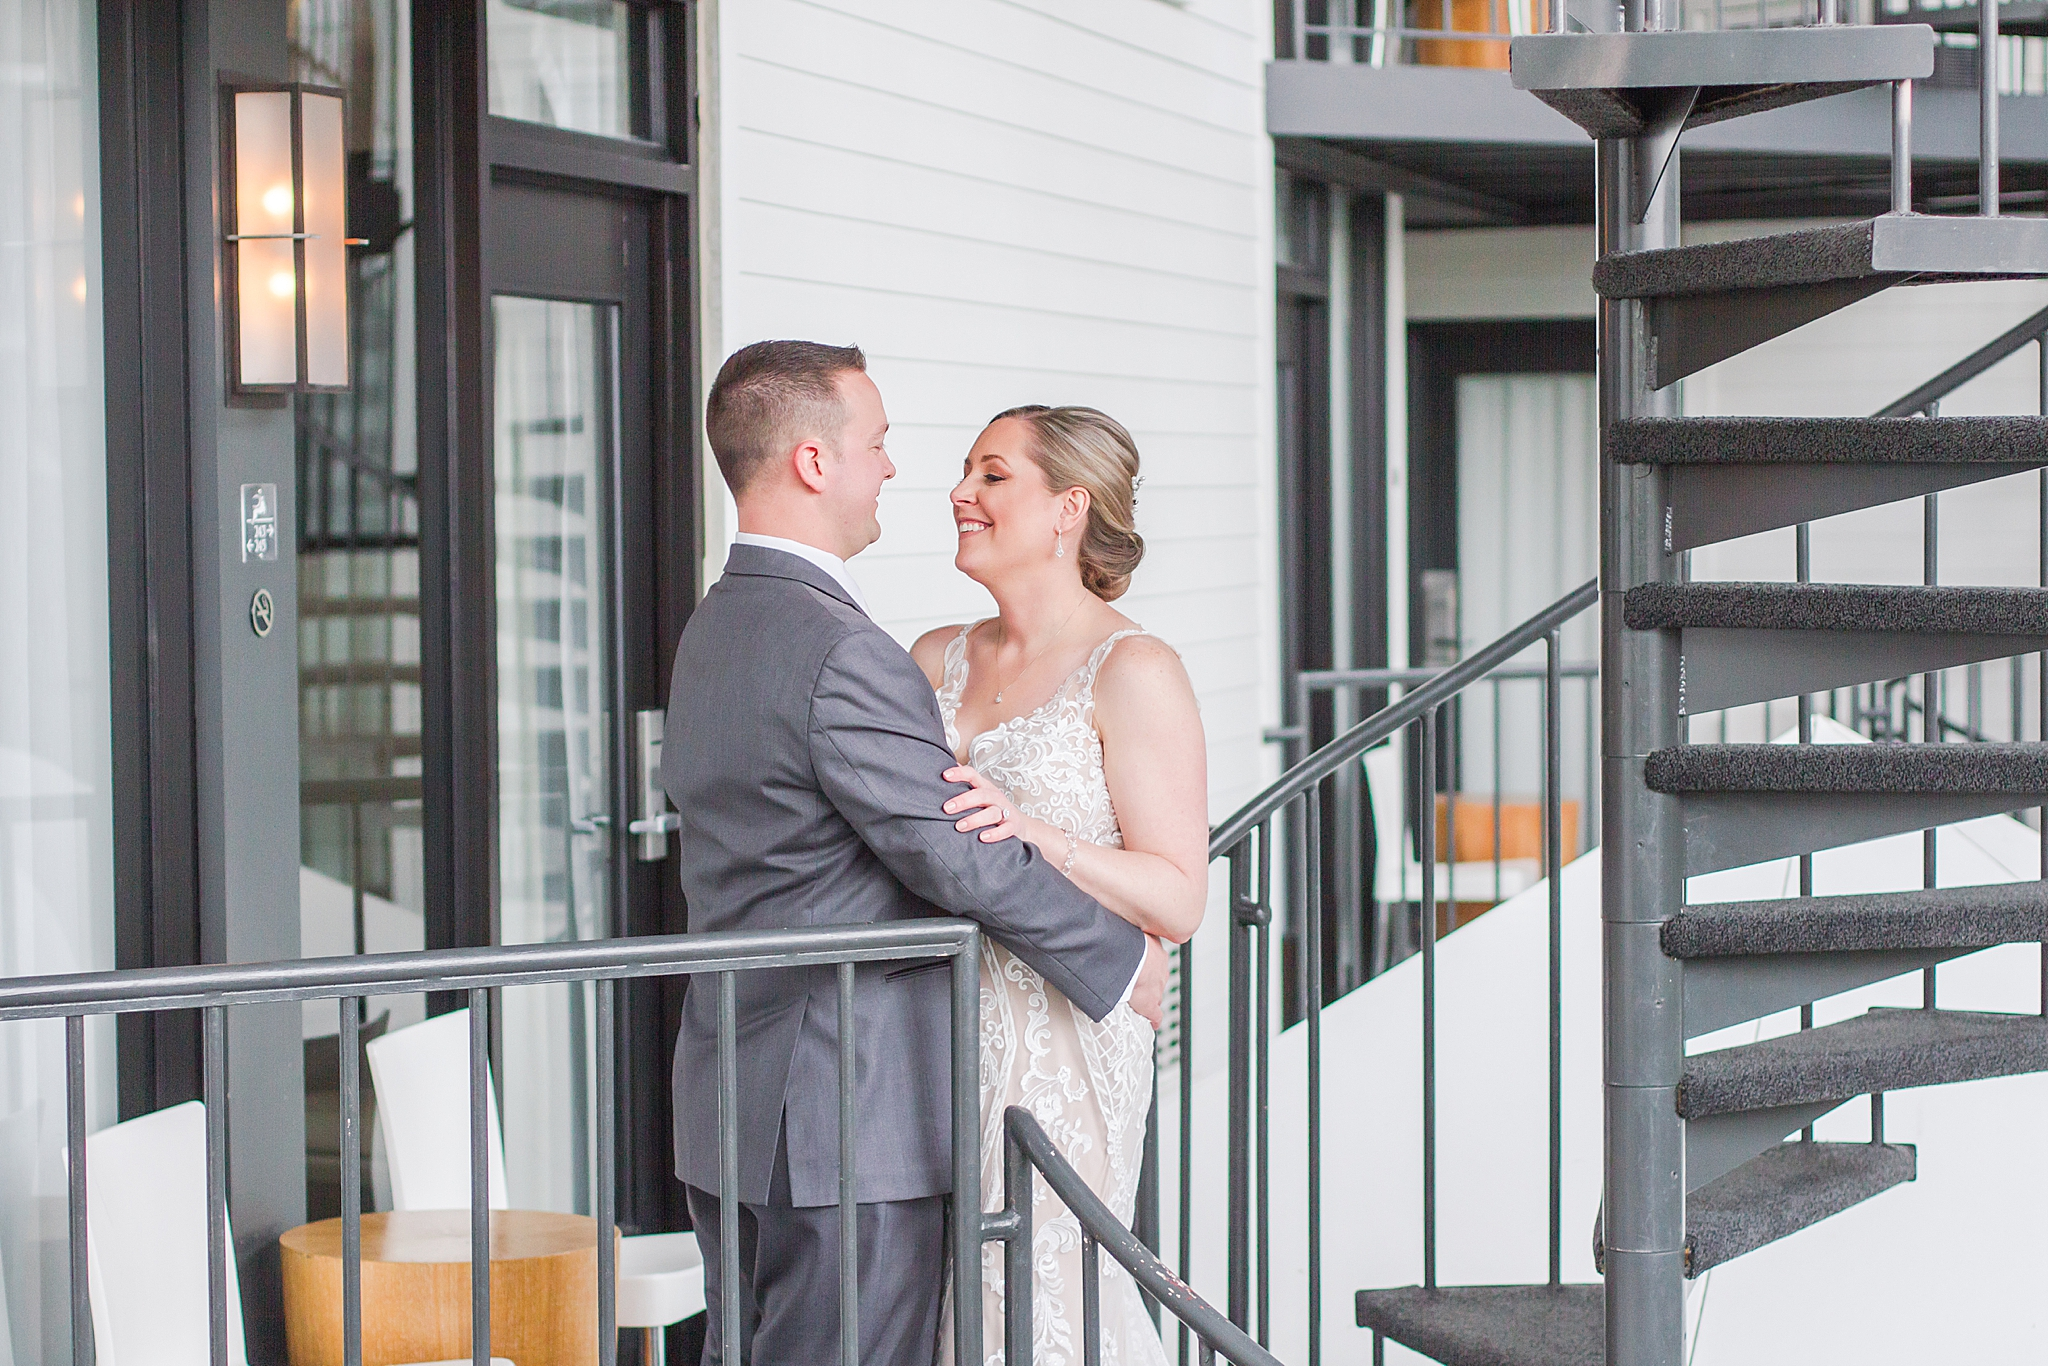 modern-romantic-wedding-photography-at-webers-in-ann-arbor-michigan-by-courtney-carolyn-photography_0053.jpg